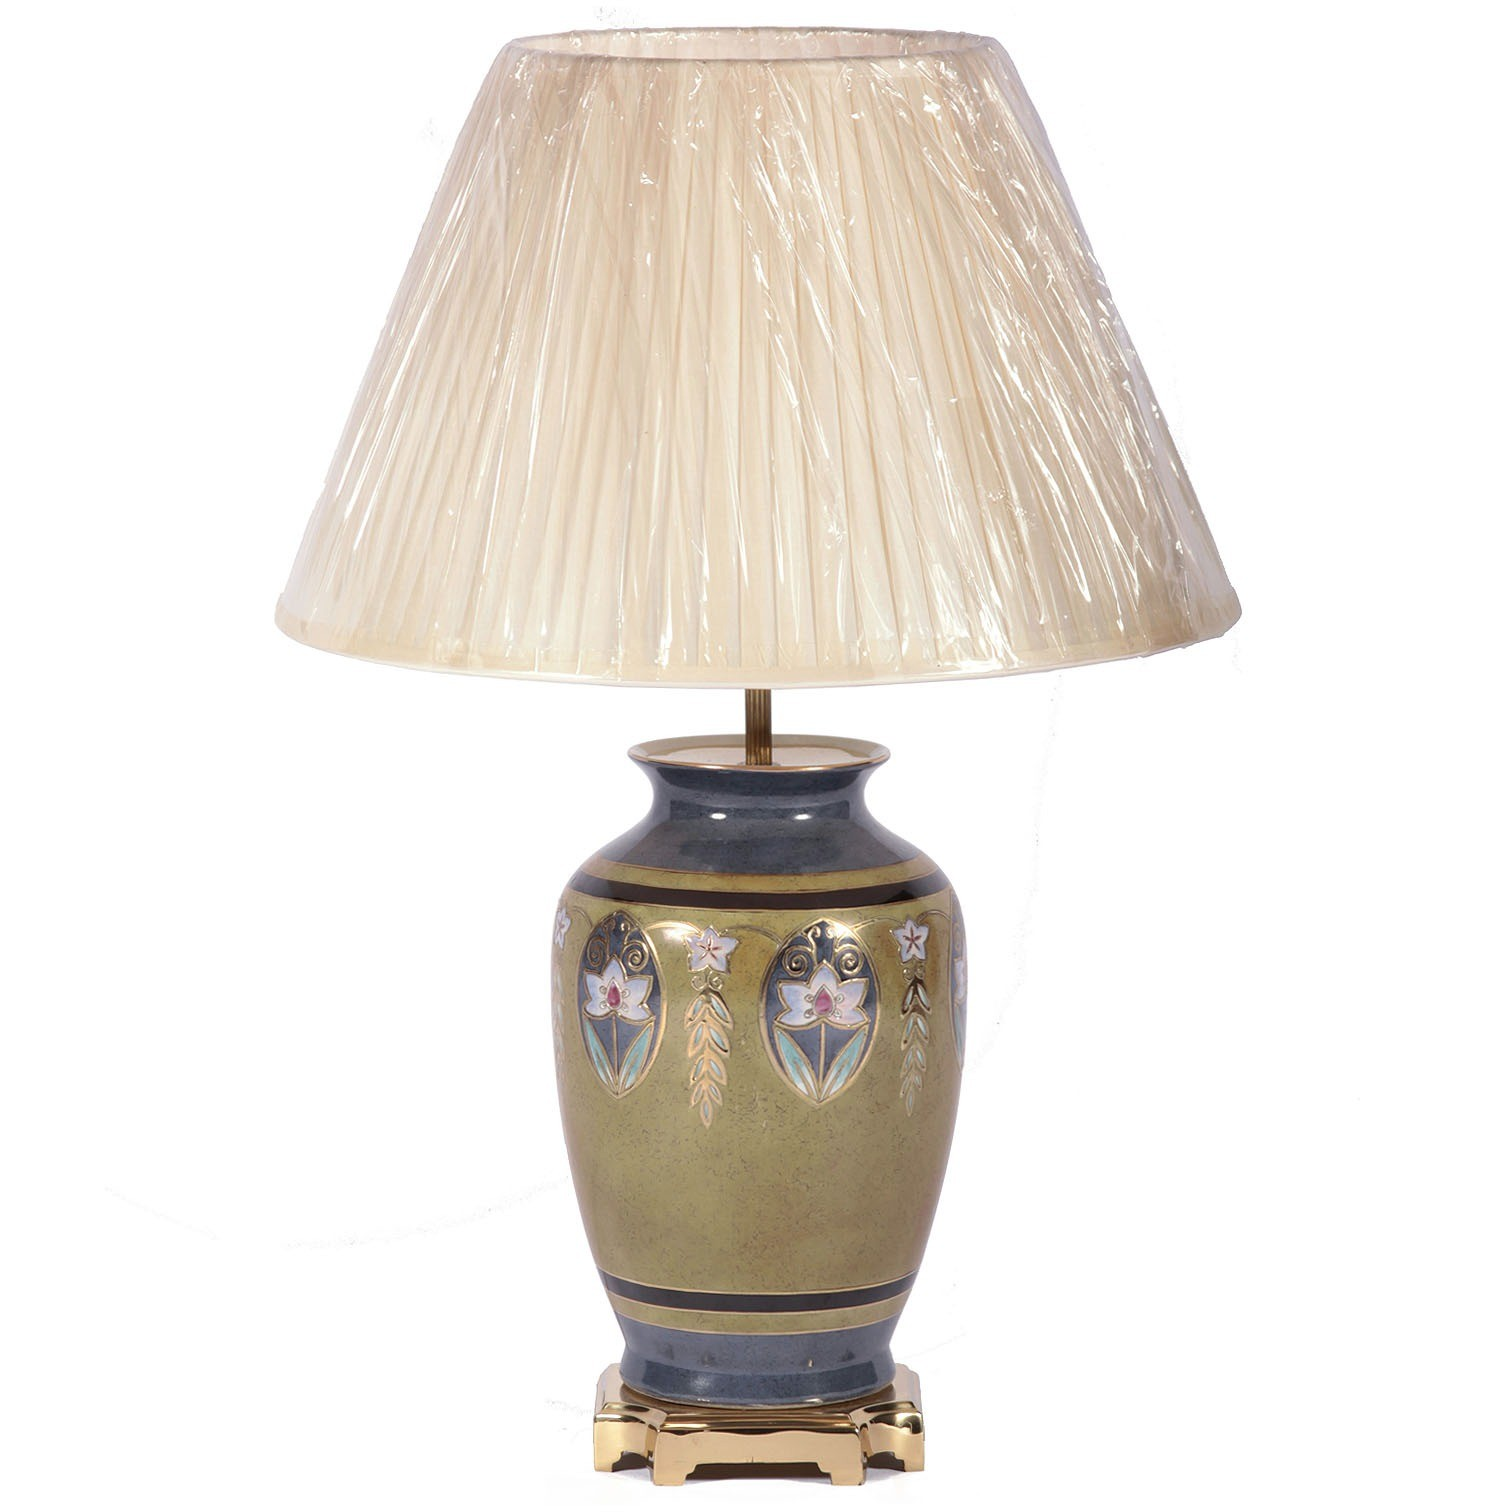 Art Deco Style Table Lamp With Shade Table Lamps From